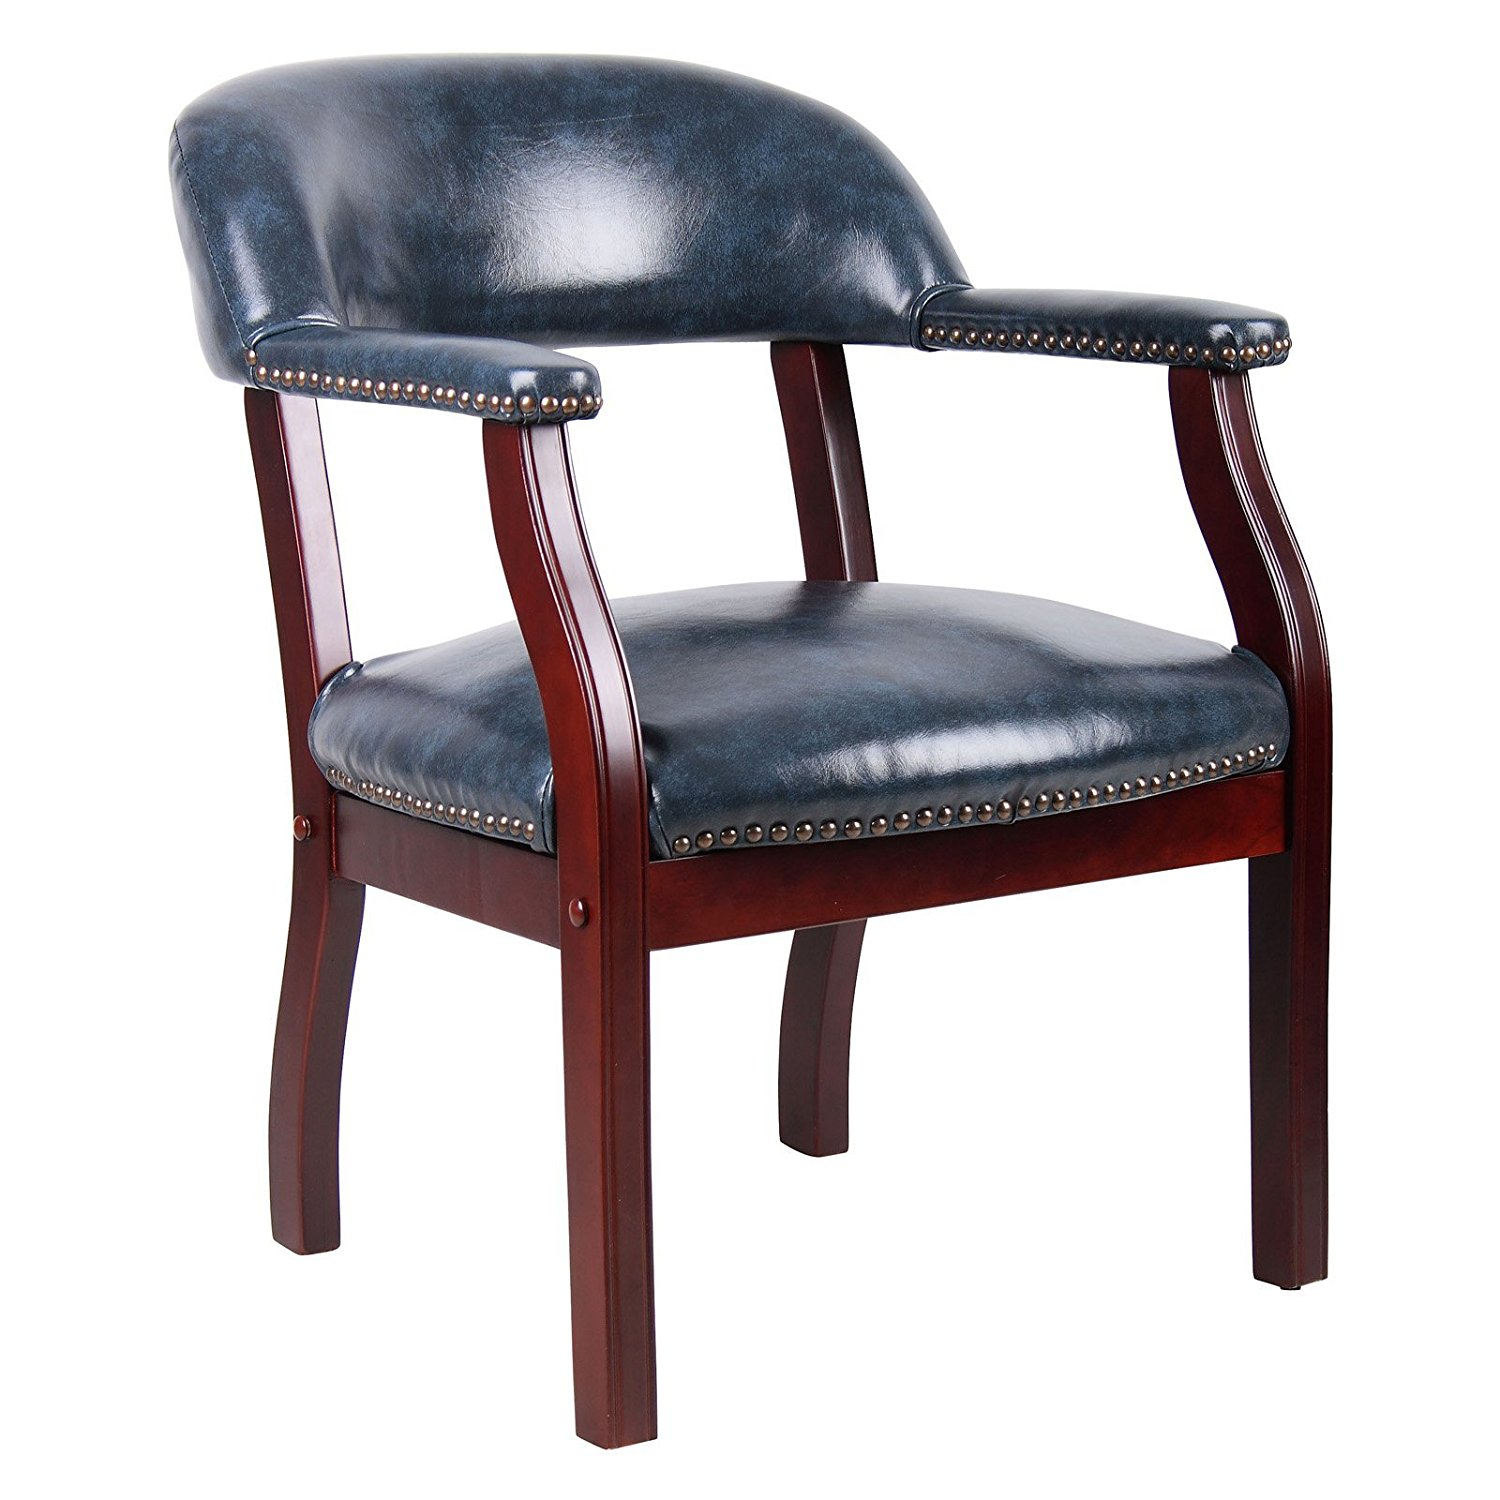 Executive Captain's Chair in Vinyl, Curved Back Legs, Office Furniture, Office Chair, Arm Rests, Sturdy COnstruction, Wood Finish, Bundle with Expert Guide for Better Life